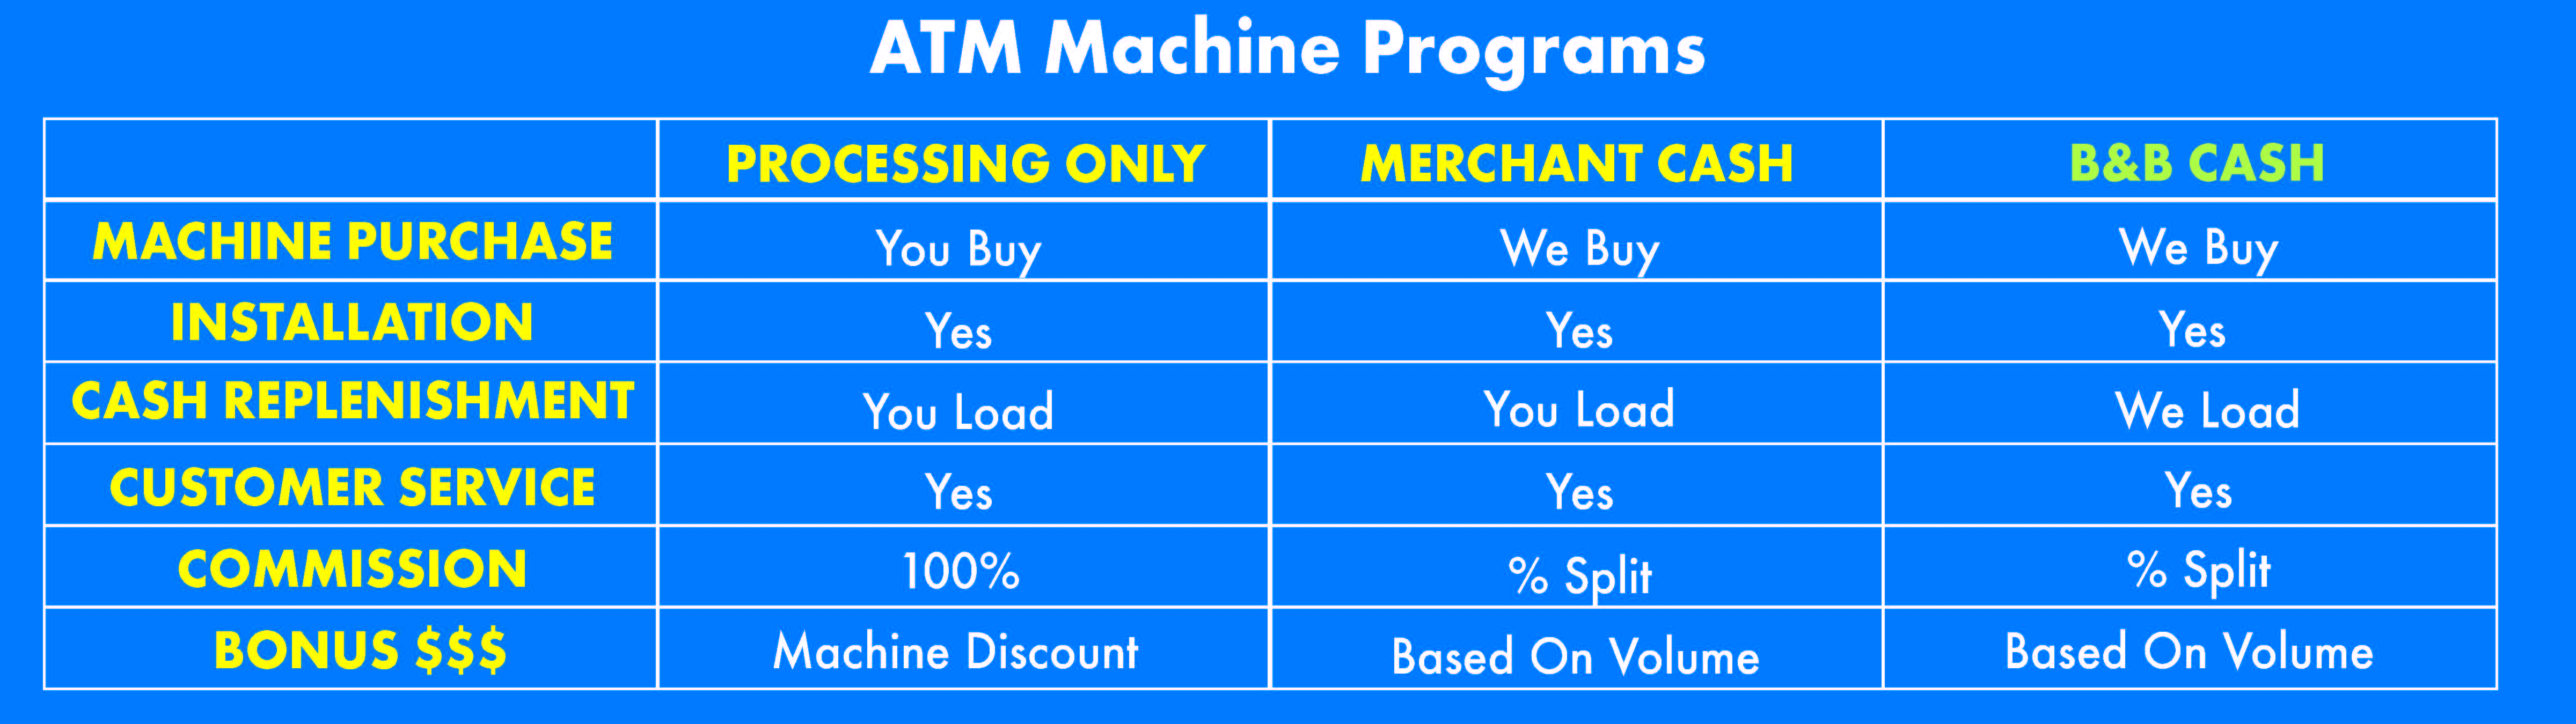 atm machine program table